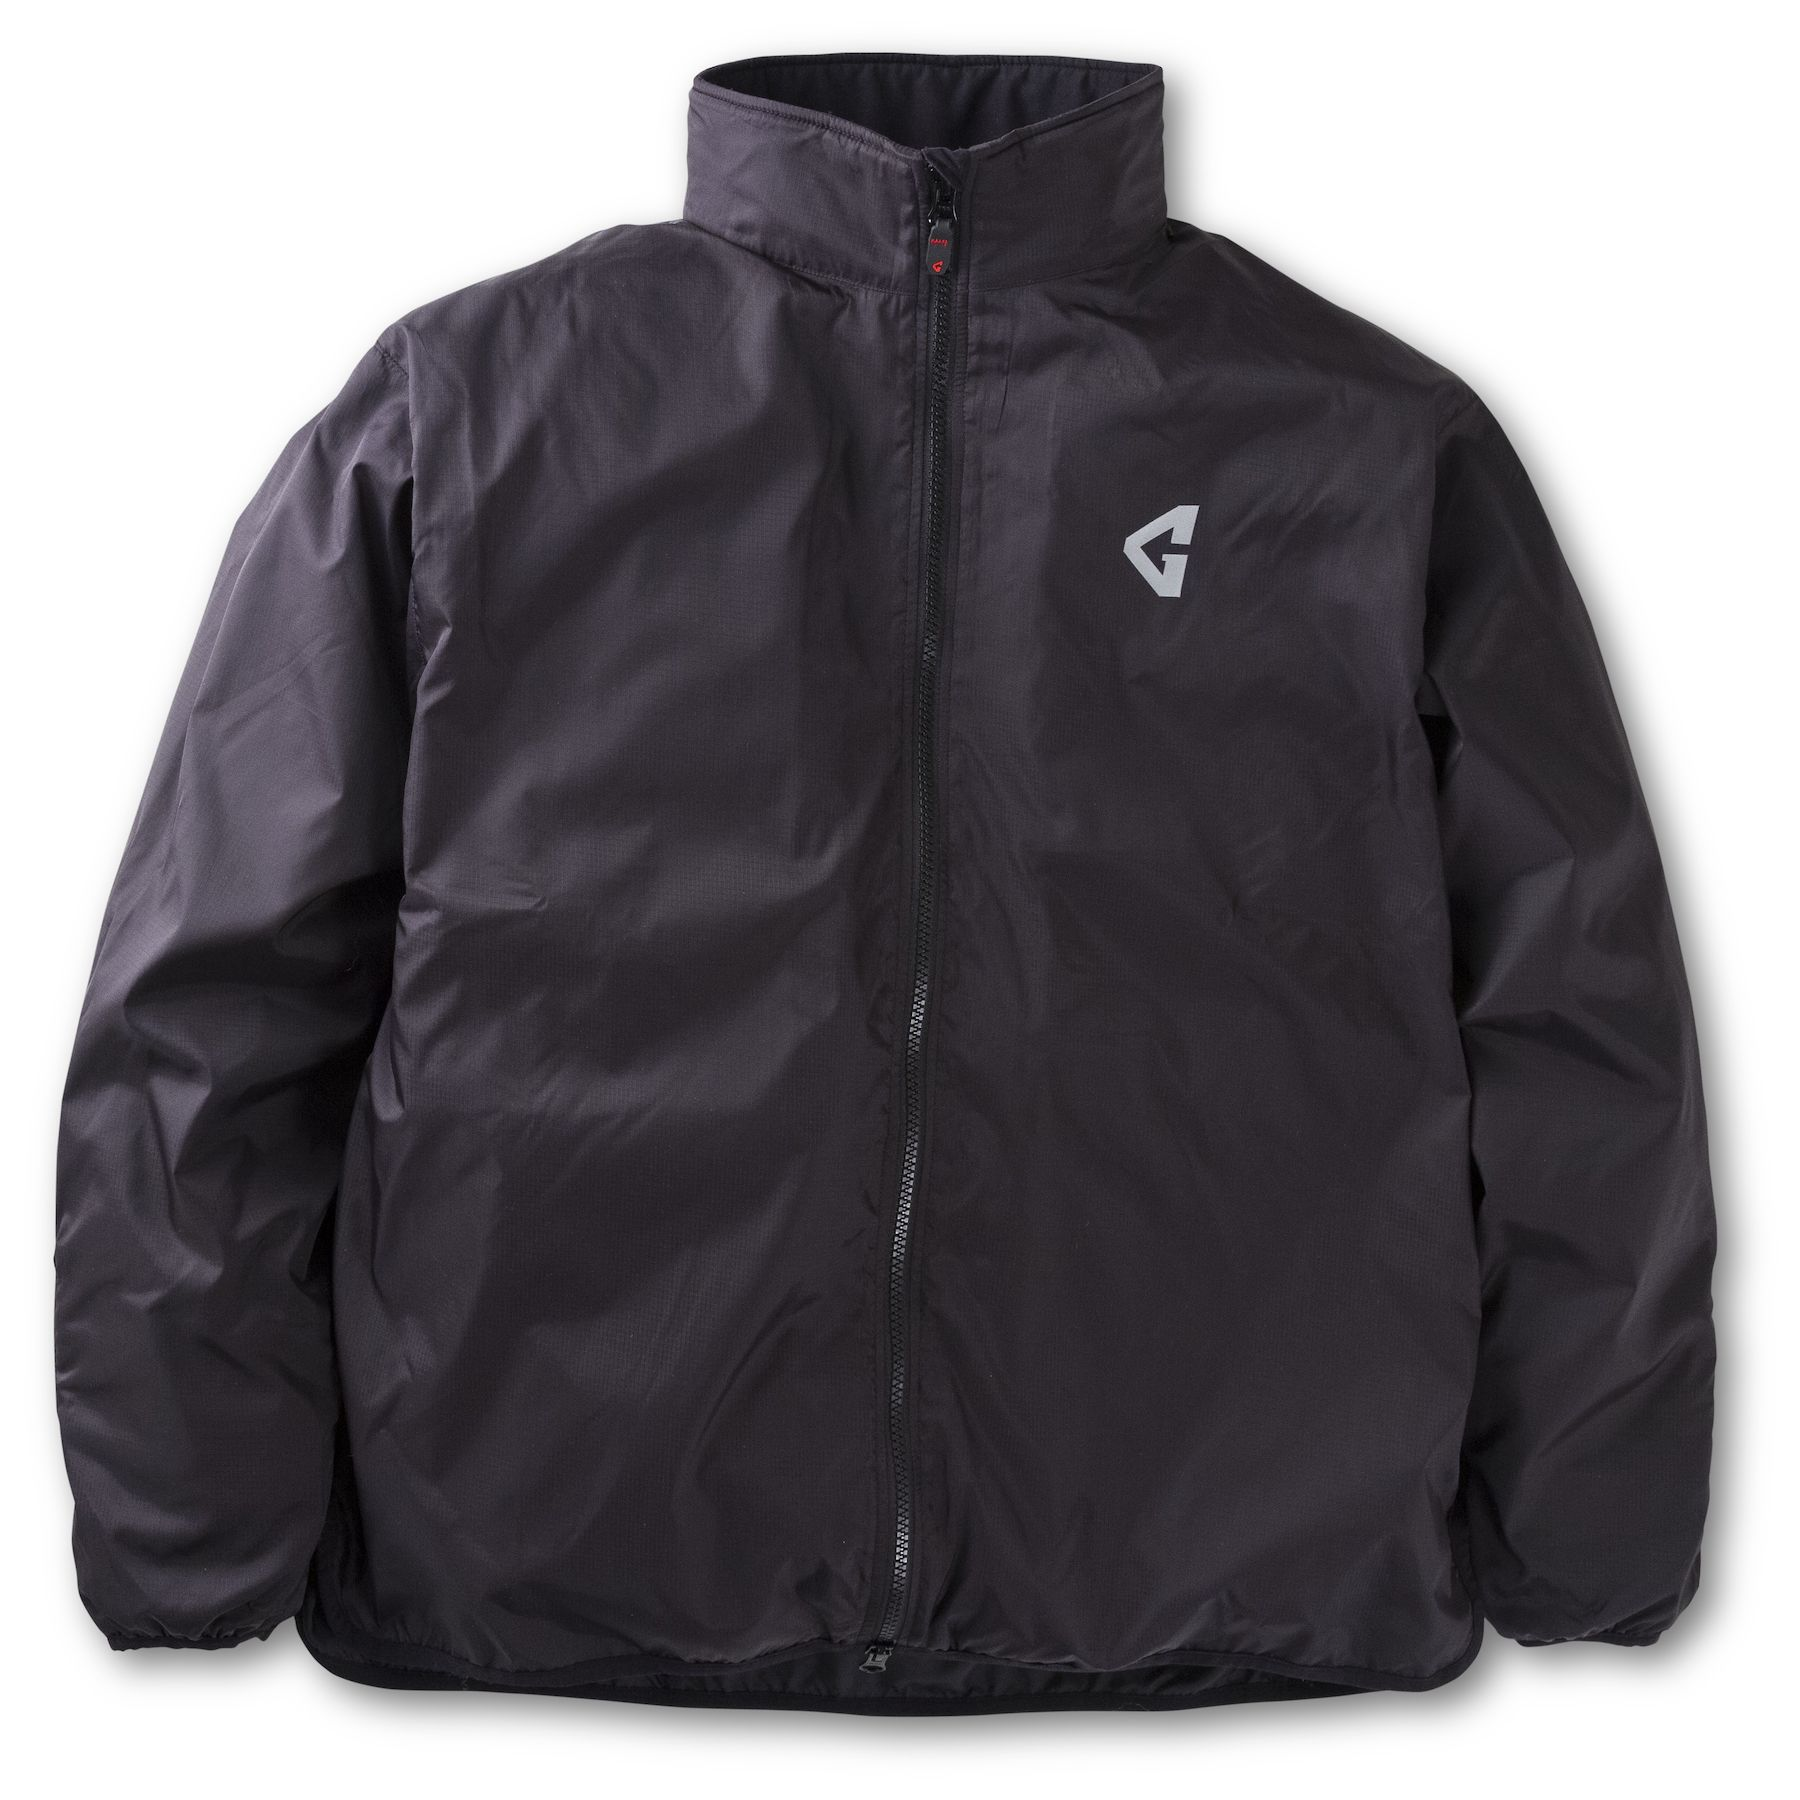 gerbing12_v_heated_jacket_liner.jpg